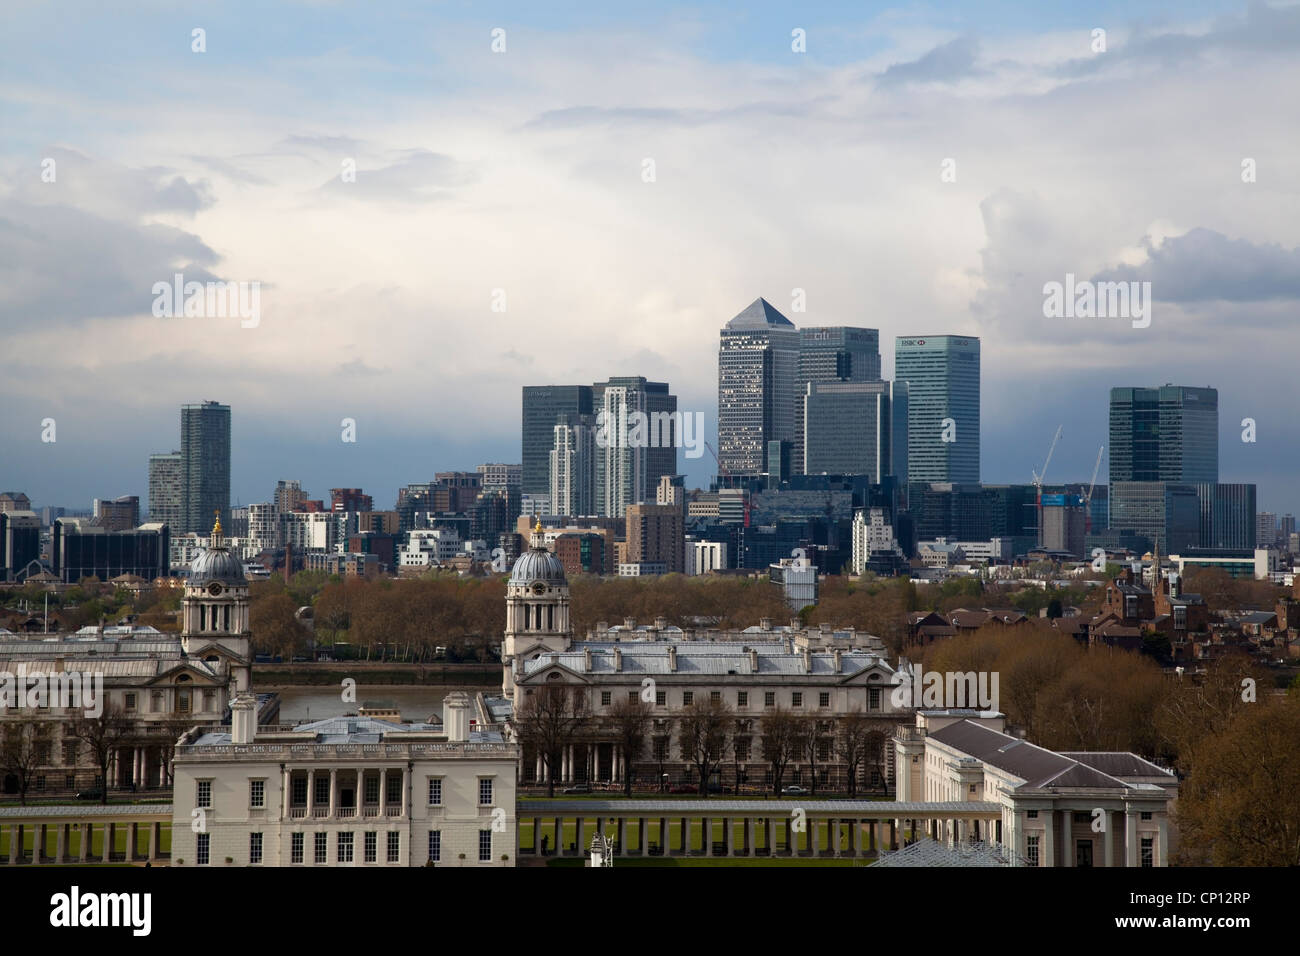 London Docklands from Greenwich - Stock Image